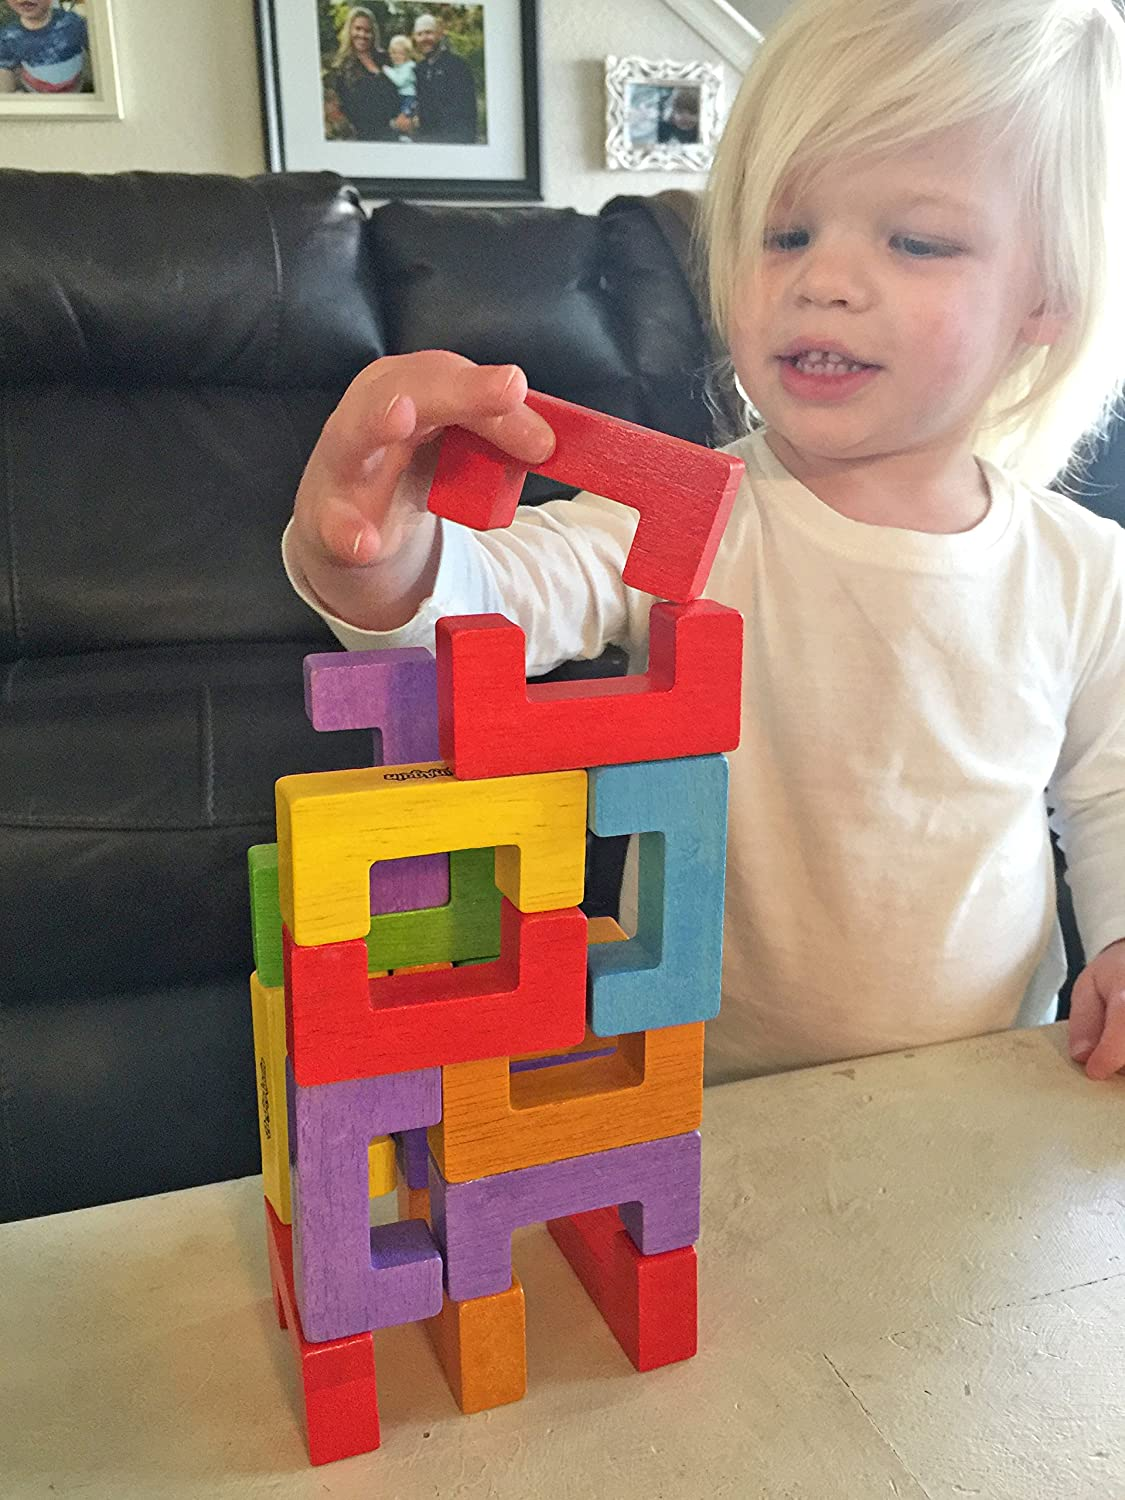 Spatial and Fine Motor Skills For Kids 2 and Up Construction and Pattern Blocks 12 Piece Playset BeginAgain U-Build Its Help Promote Early Math